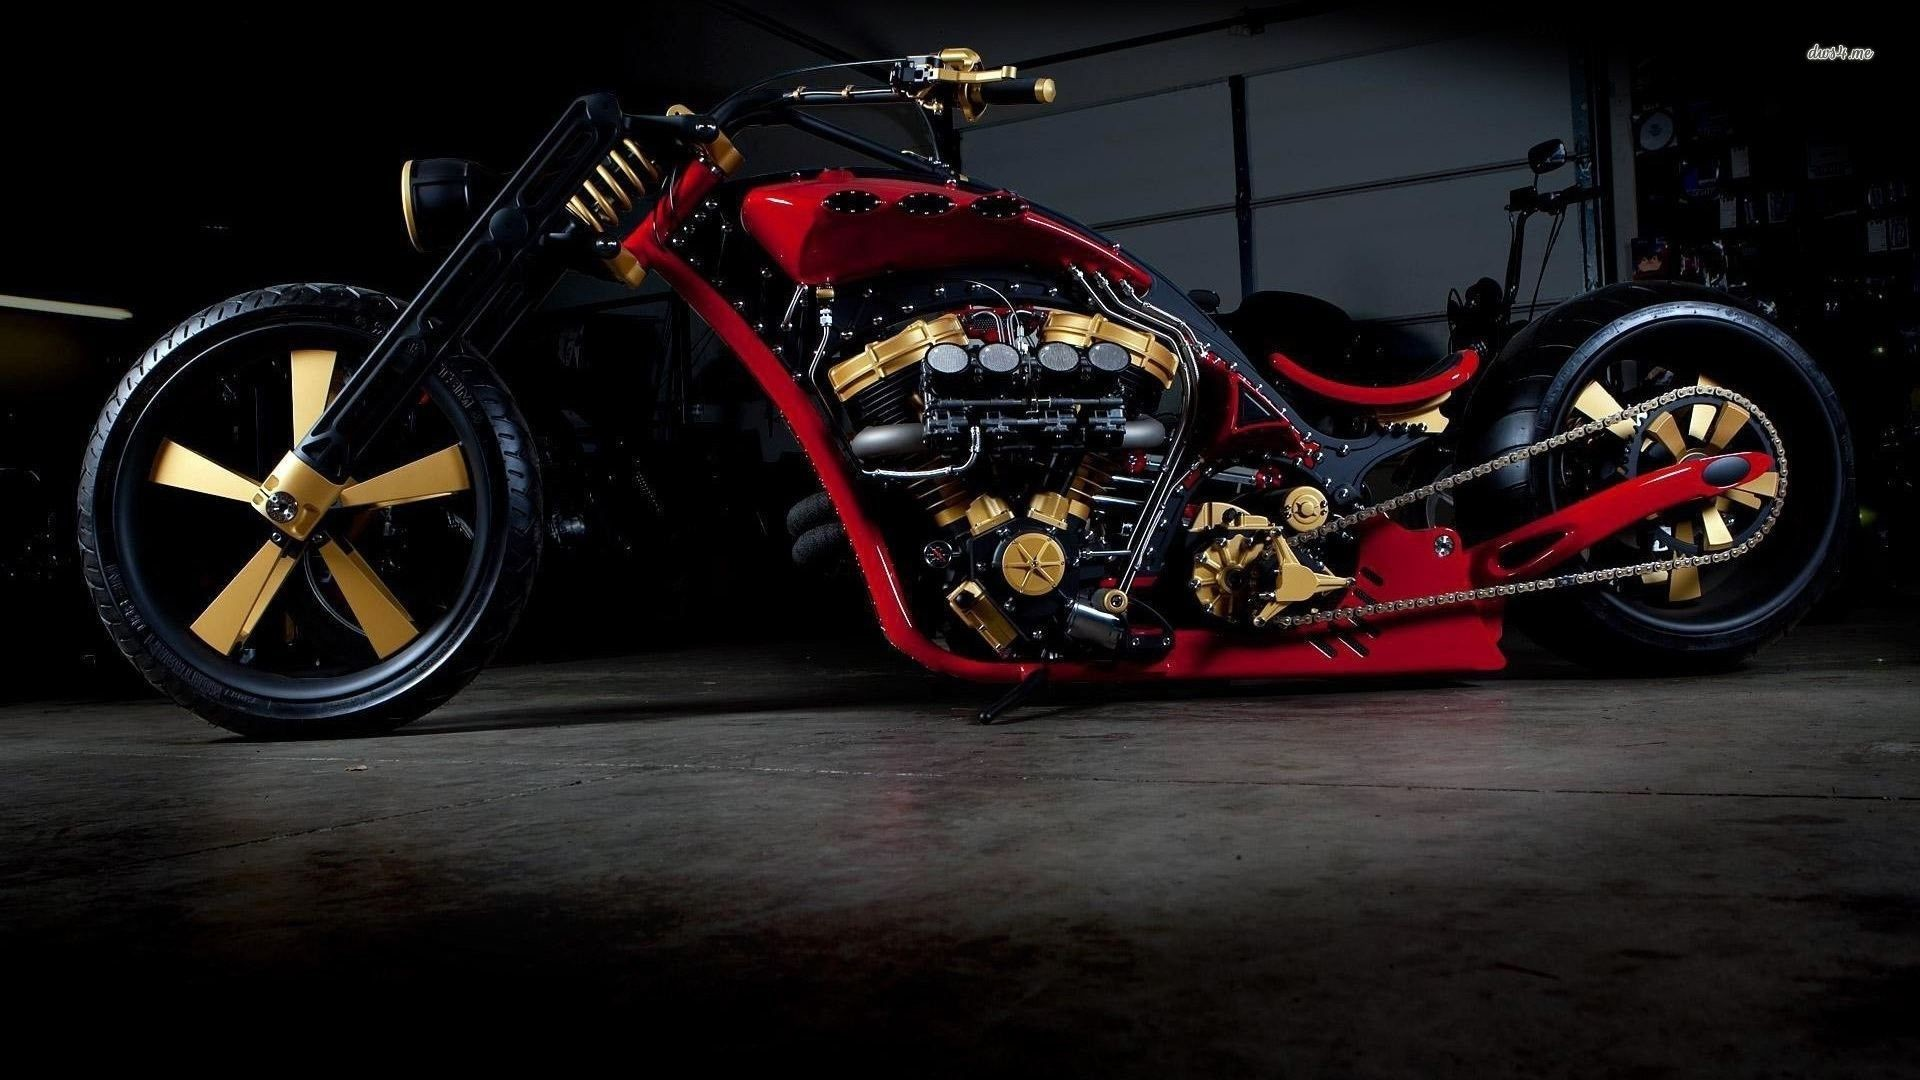 1920x1080 Custom Choppers Motorcycles Wallpaper